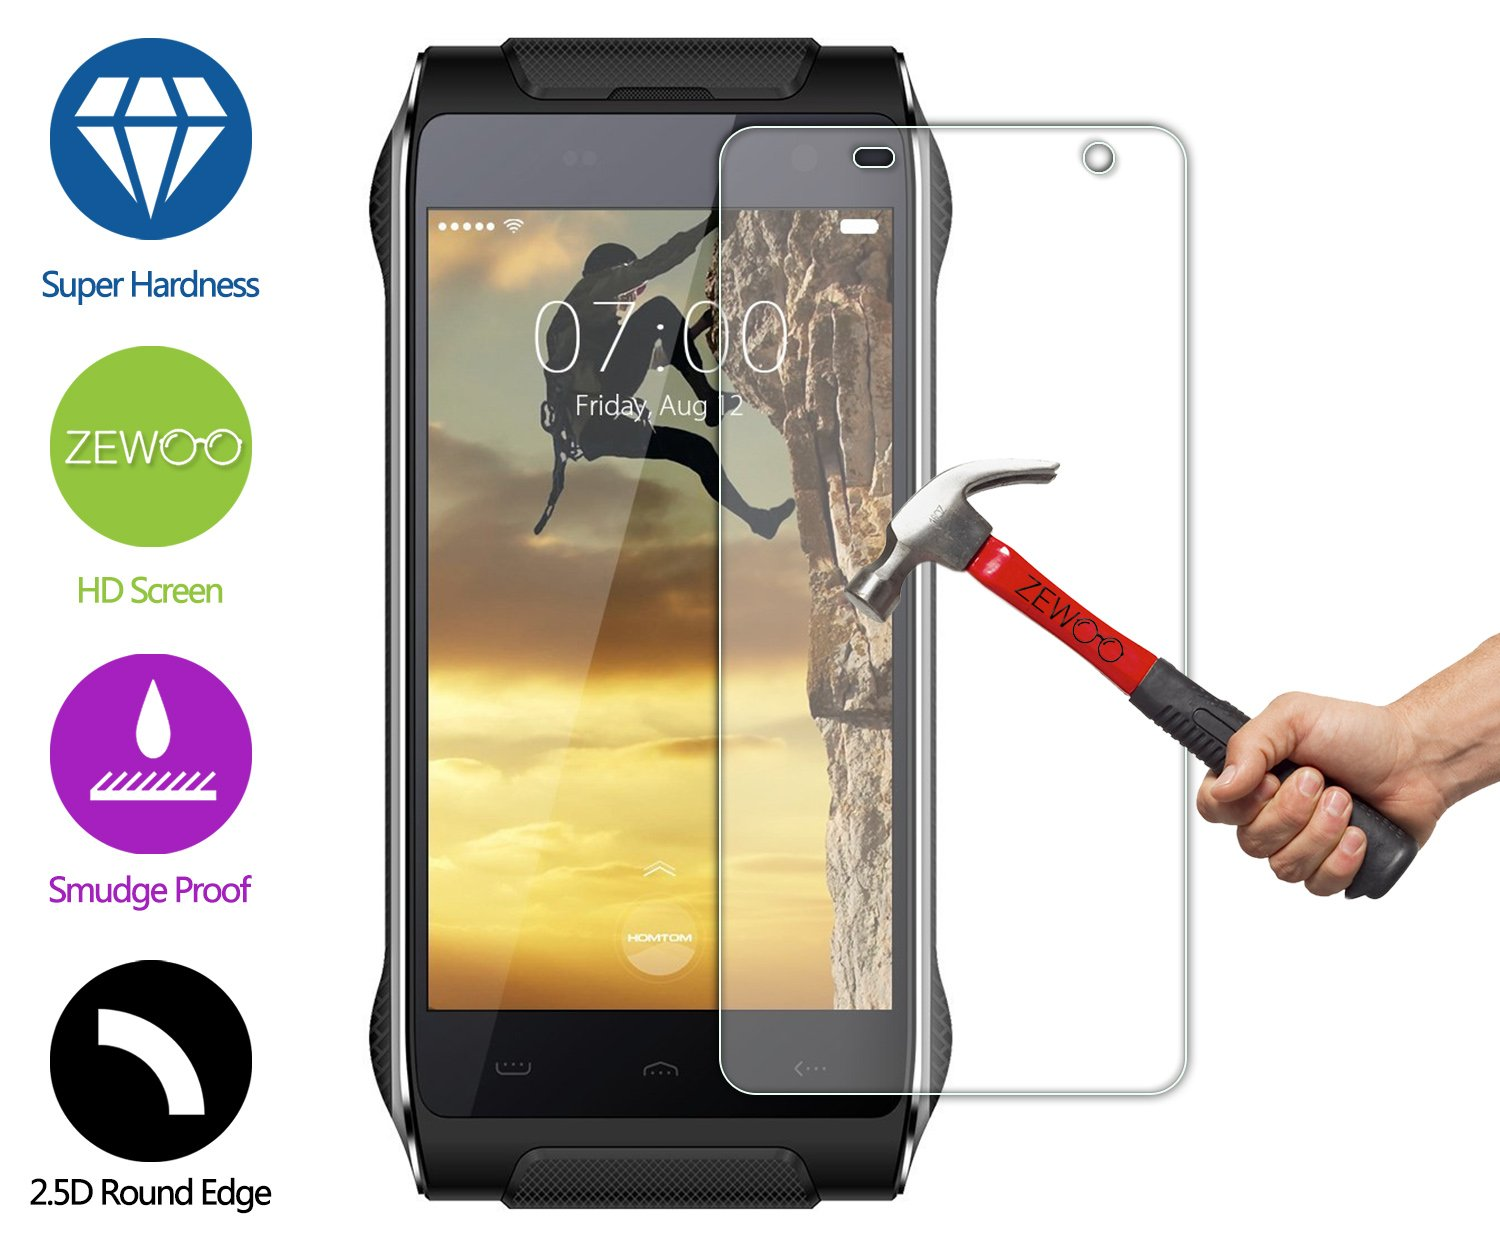 Tempered Glass 2.5D Screen Protector Film For Kindle fire 7.0// Kindle Voyage 6.0